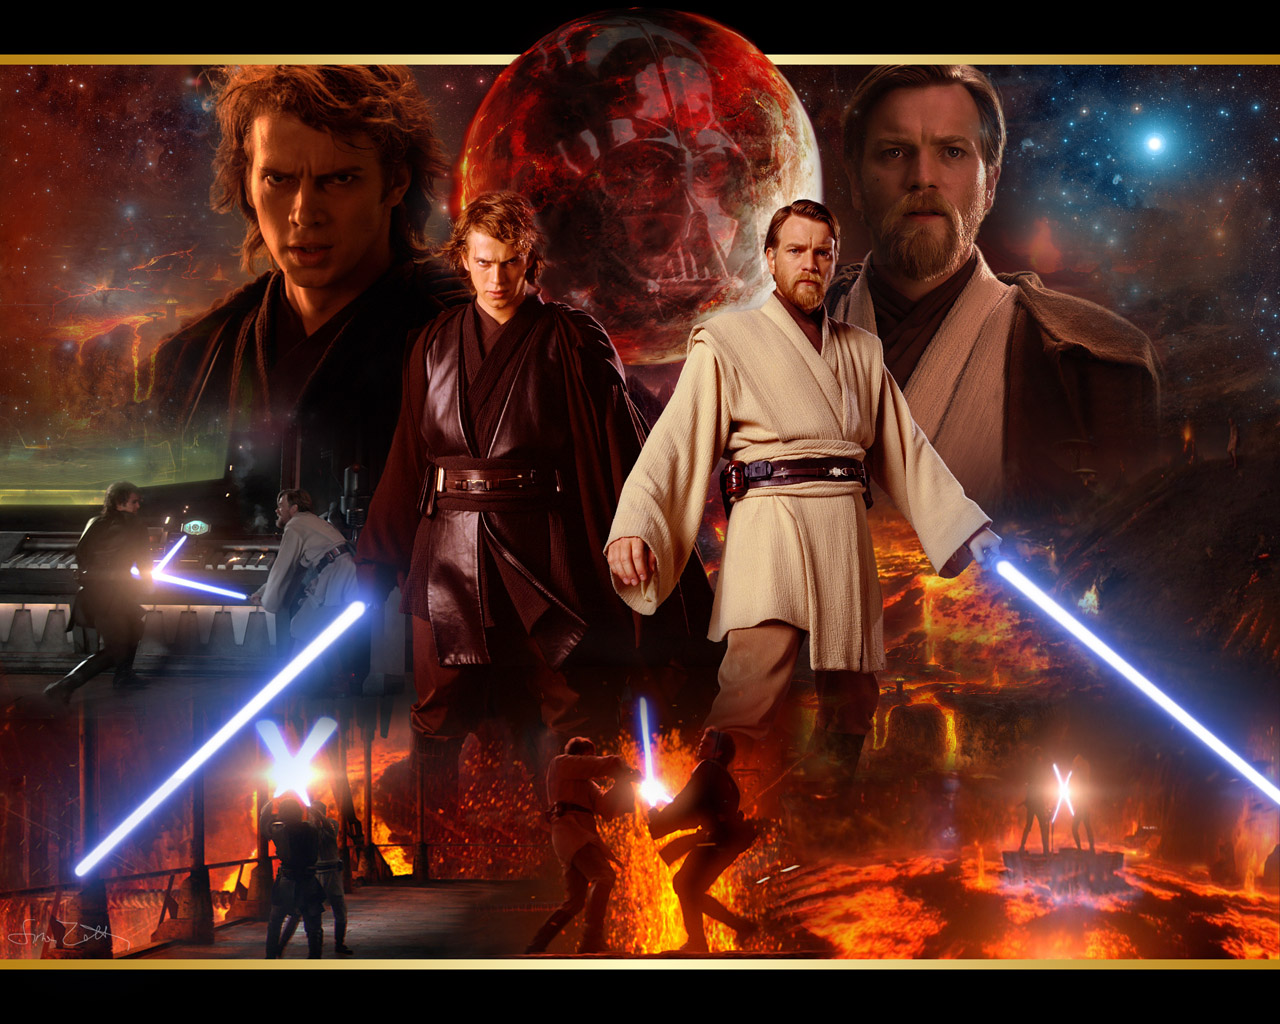 star wars wallpaper - Star Wars Wallpaper (794564) - Fanpop